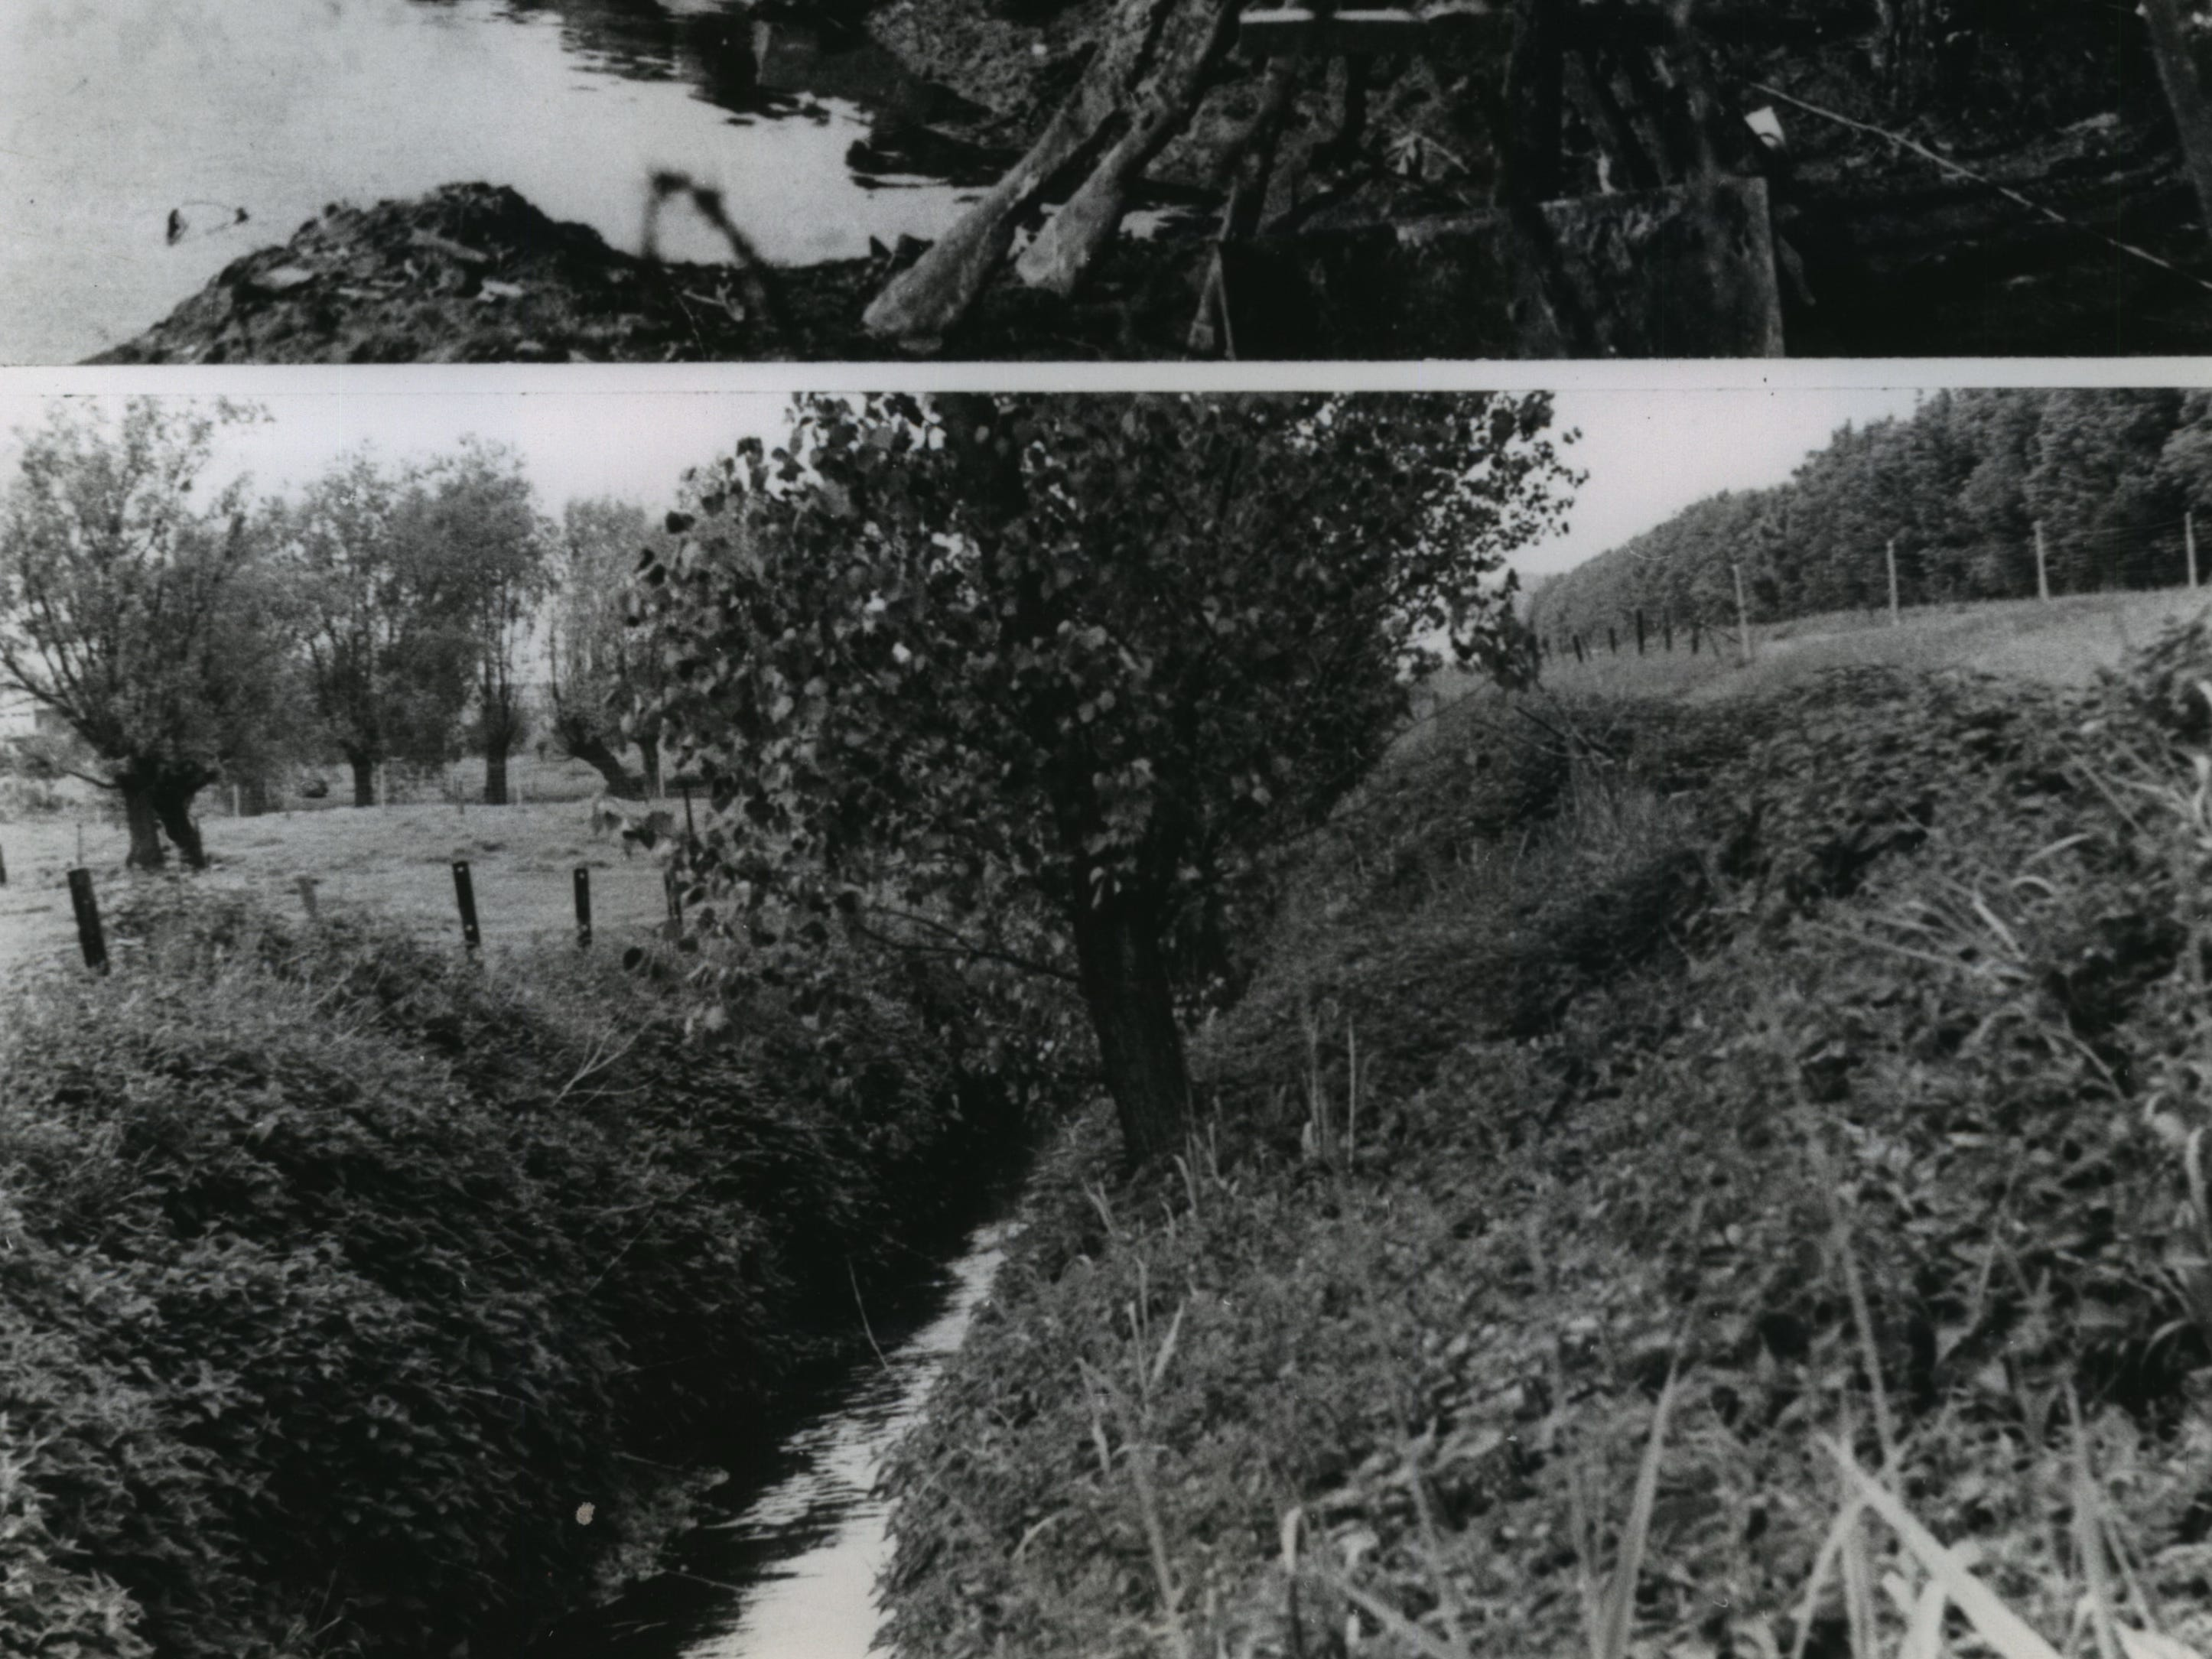 Flanders Fields are green again, instead of red with blood as they were 50 years ago. The little army of Belgium, invaded by the Germans, retreated to Flanders. It held on for four years, but half a million Allied soldiers died around Ypres. Top: A Belgian soldier stands amid front line desolation at the River Yperlee near Ypres in 1917. Bottom: Fifty years and a second war after World War I, Flanders Fields lie in quiet peace on the River Yperlee near Ypres.